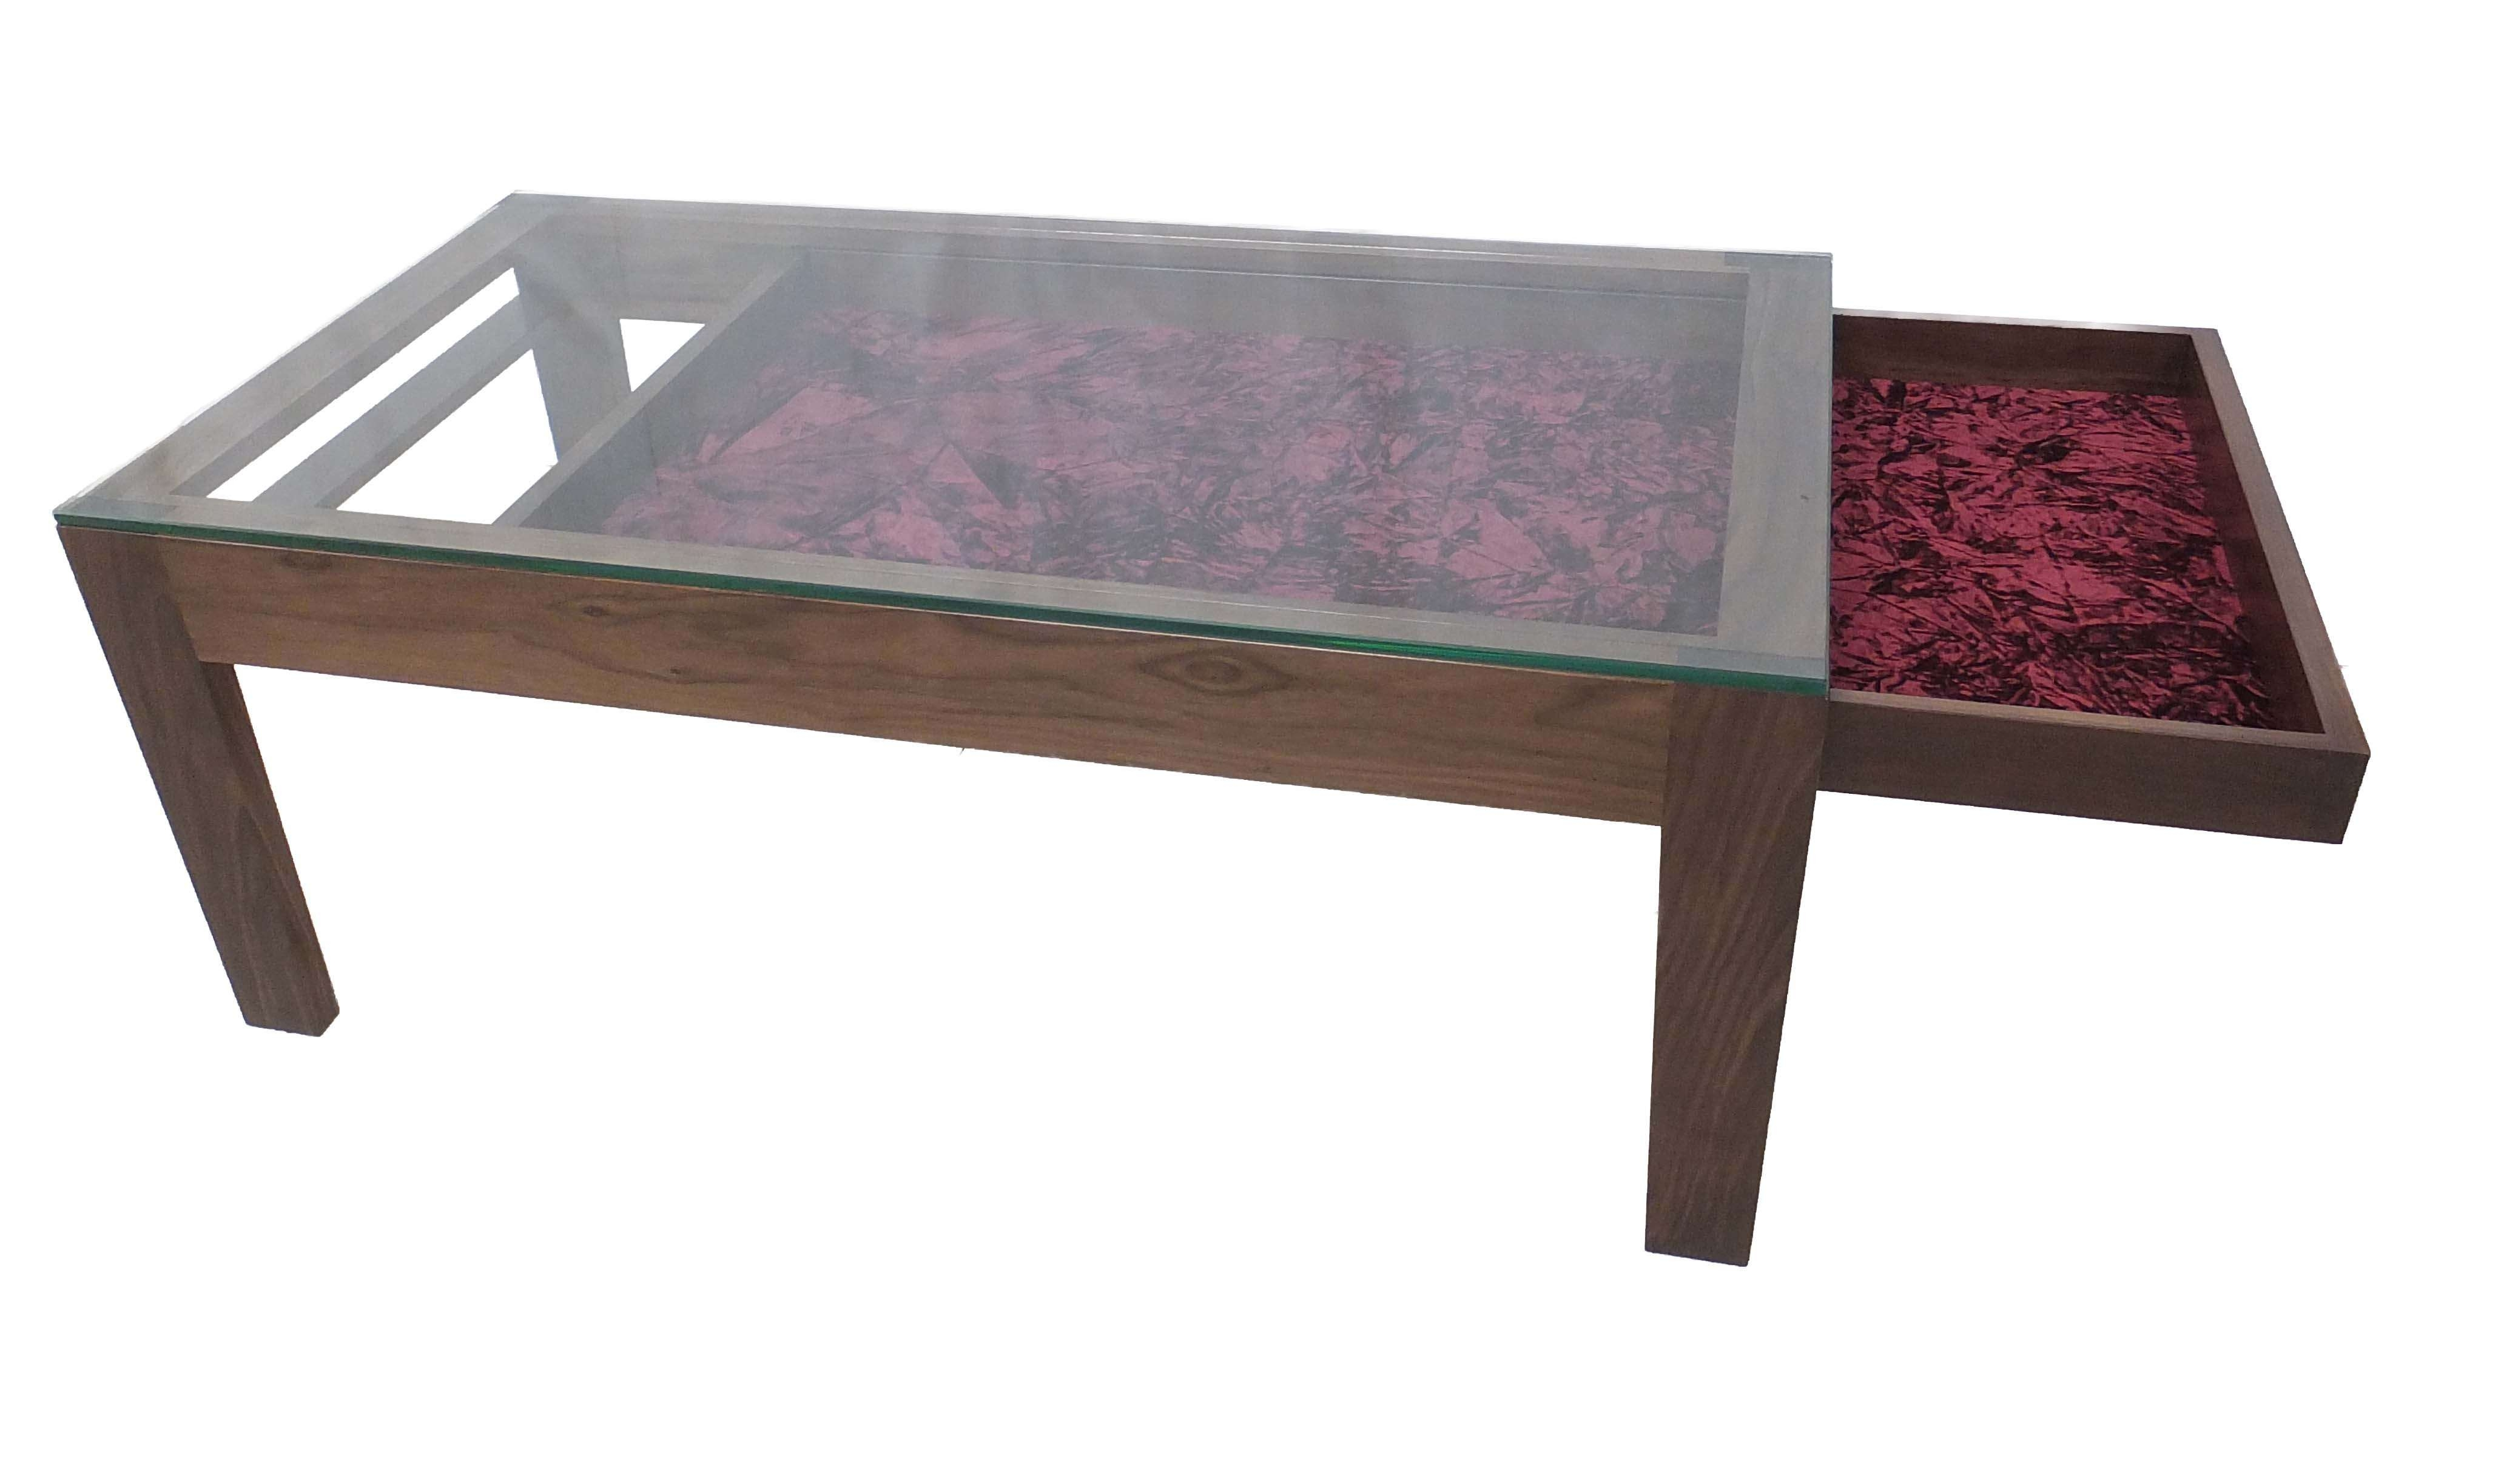 Fashionable Coffee Tables With Glass Top Display Drawer Intended For Glass Display Coffee Table Uk Made From Solid American Walnut With (View 8 of 20)